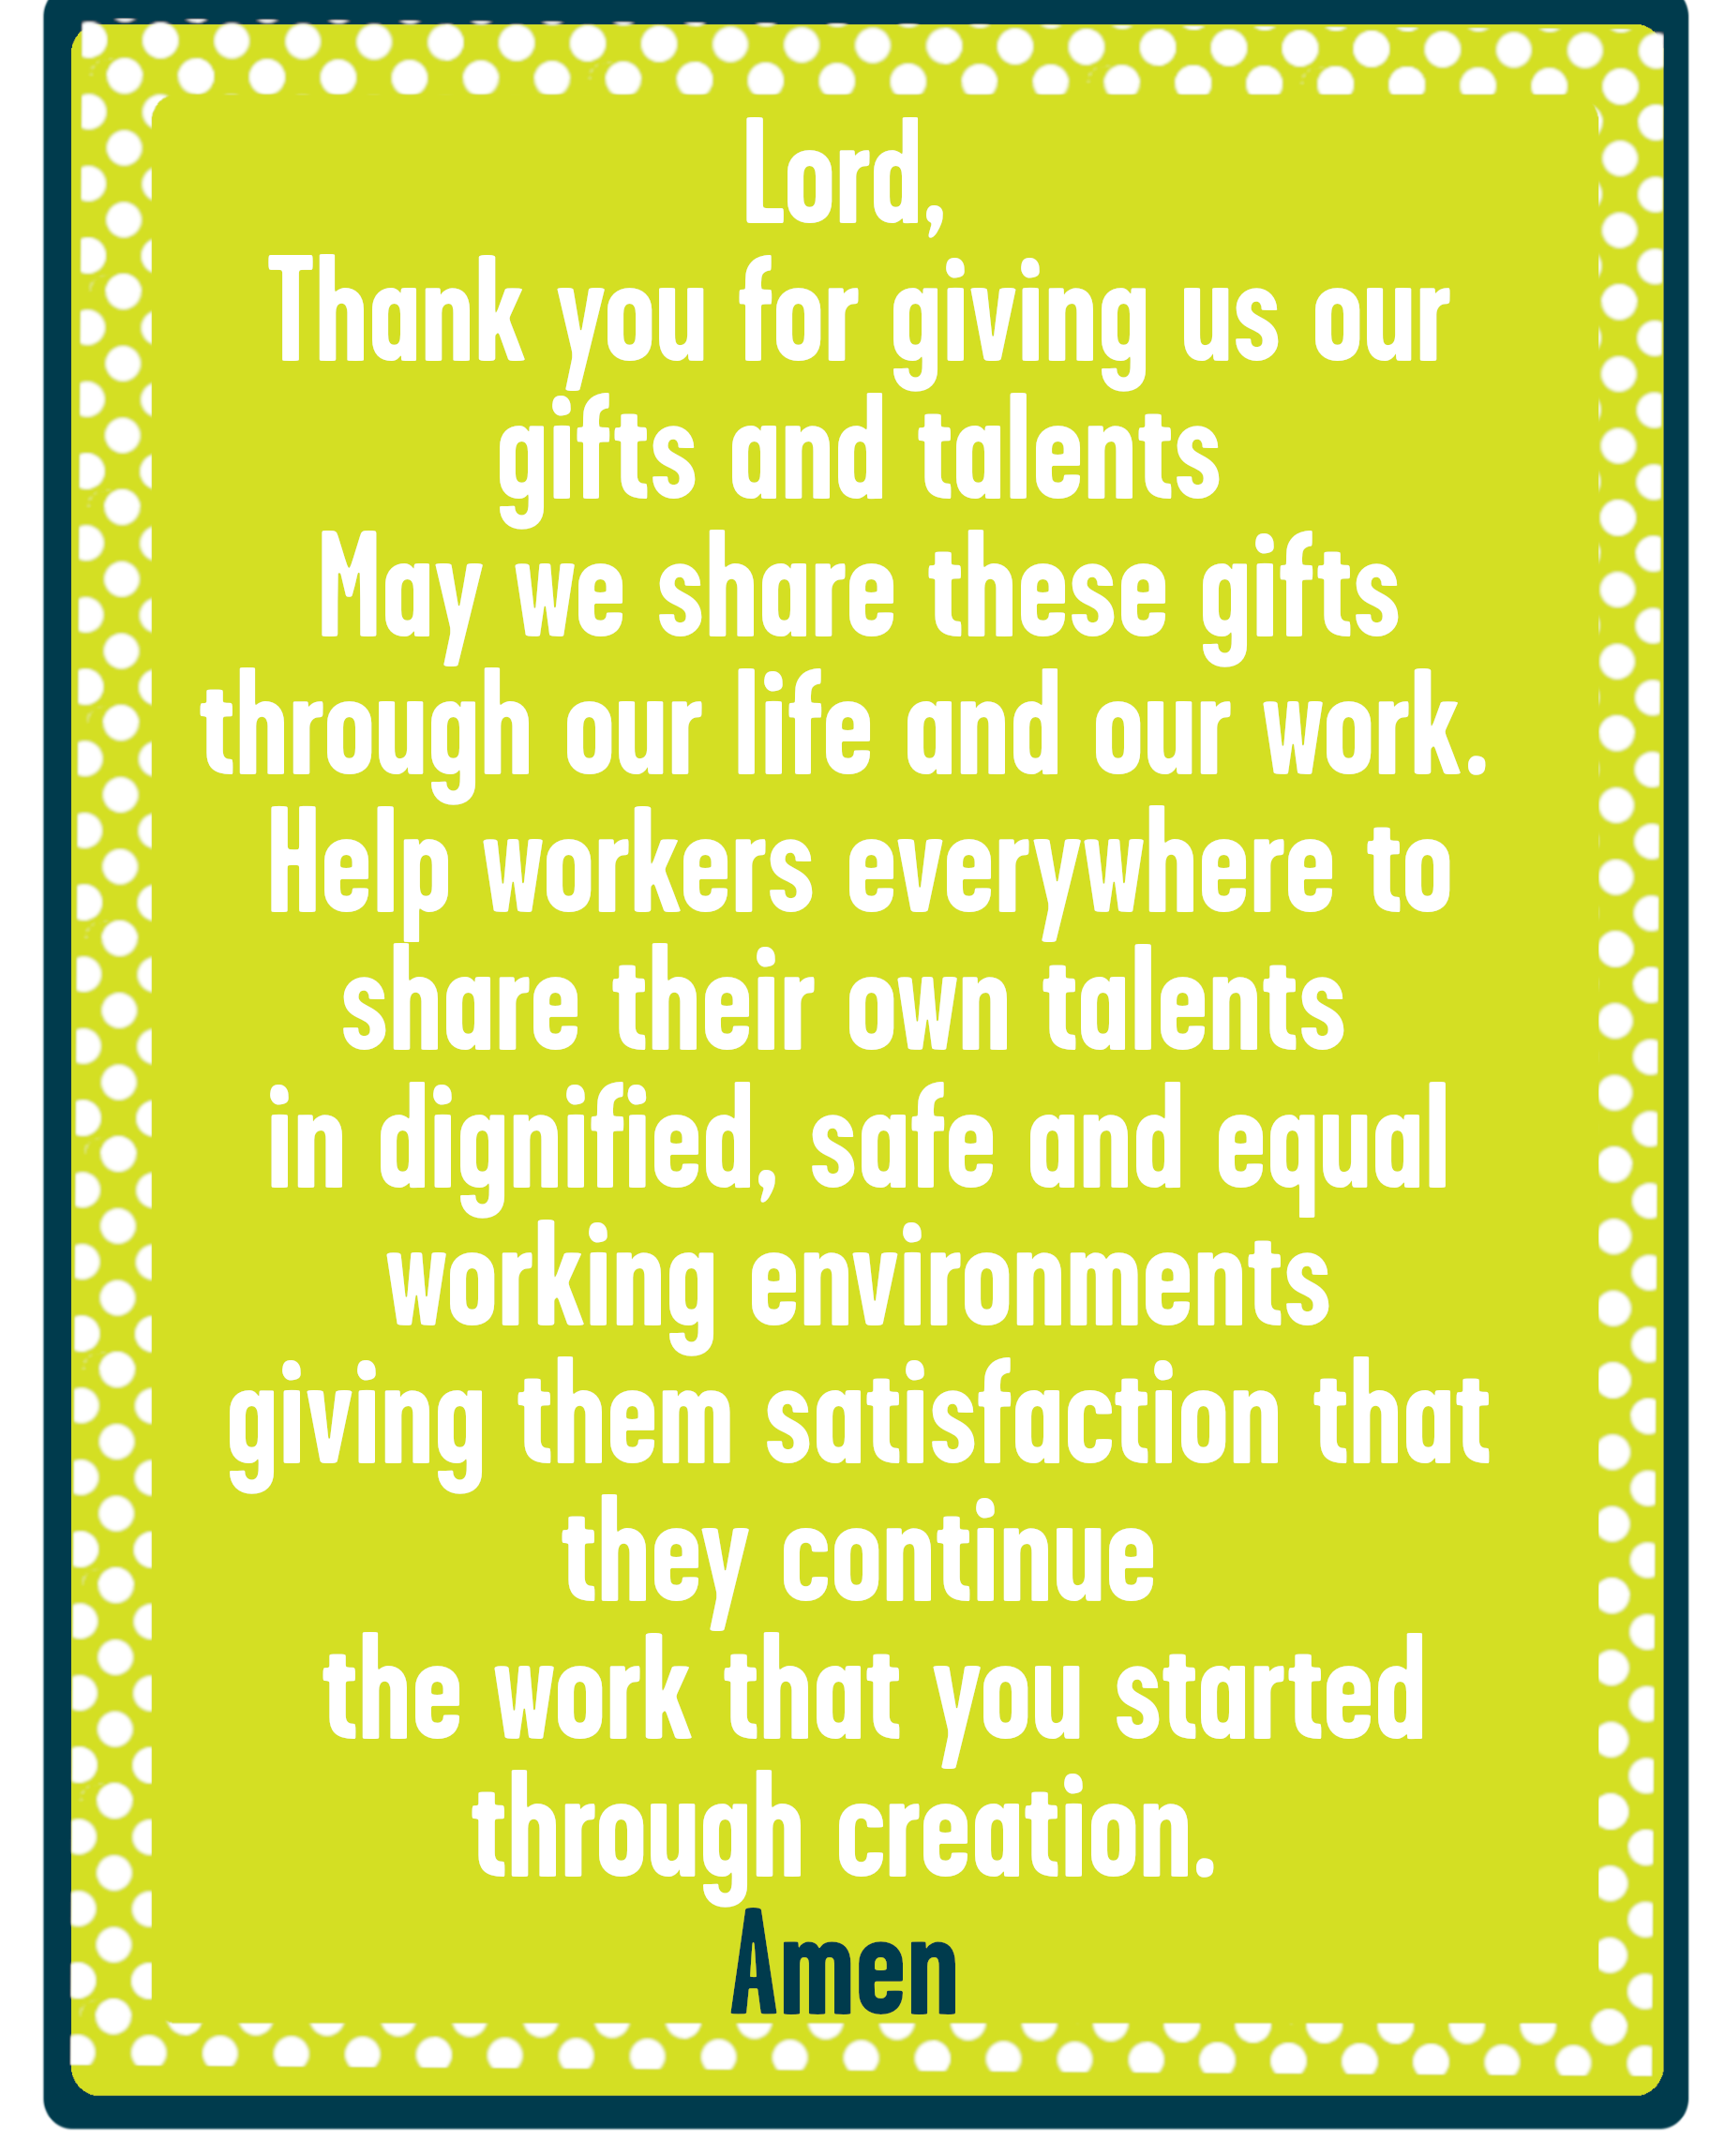 dignity of workers prayer card.png